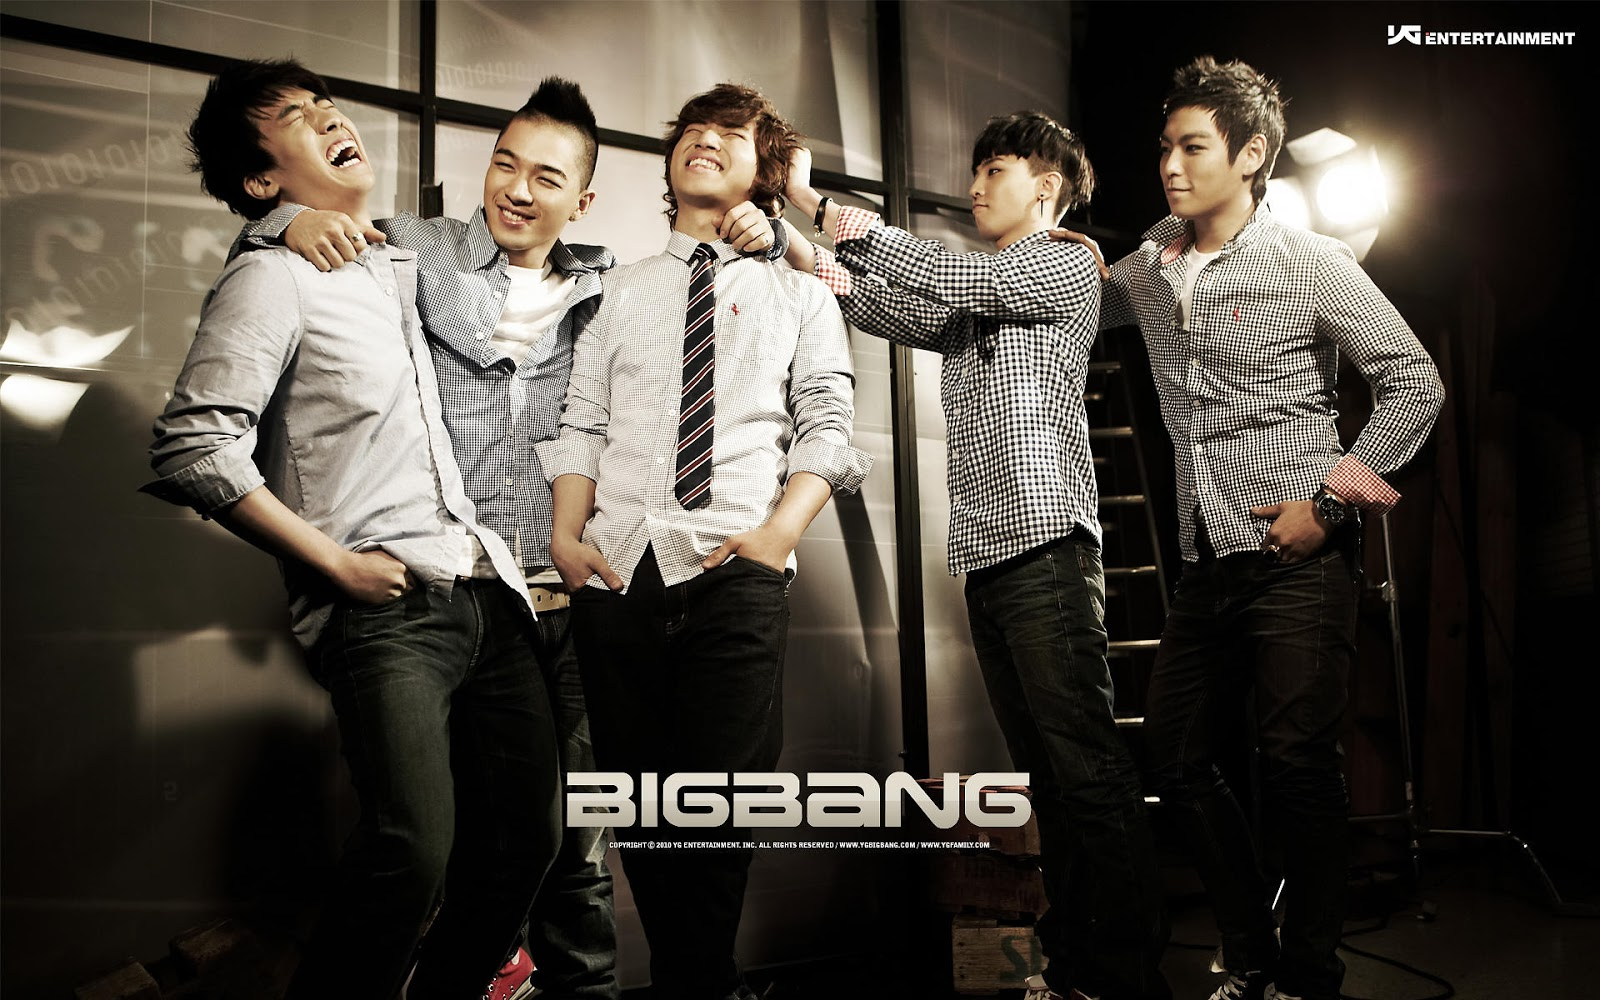 Hot Sexy Beauty Club Big Bang 빅뱅 Wallpaper Hd